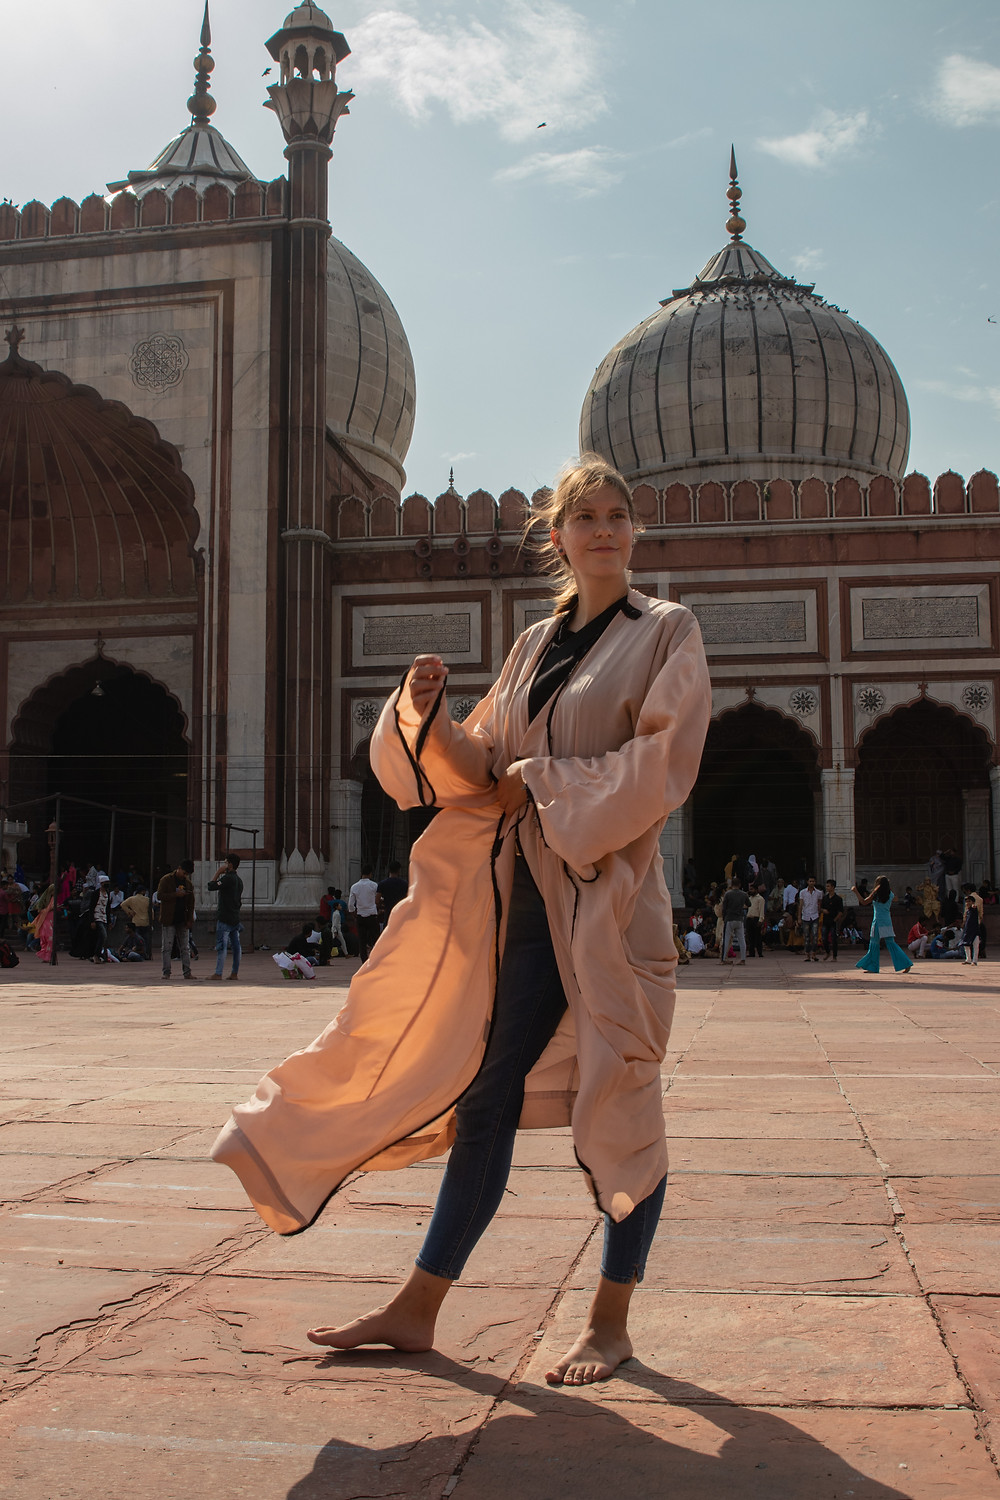 Visit of the Jama Masjid Mosque in Old Delhi